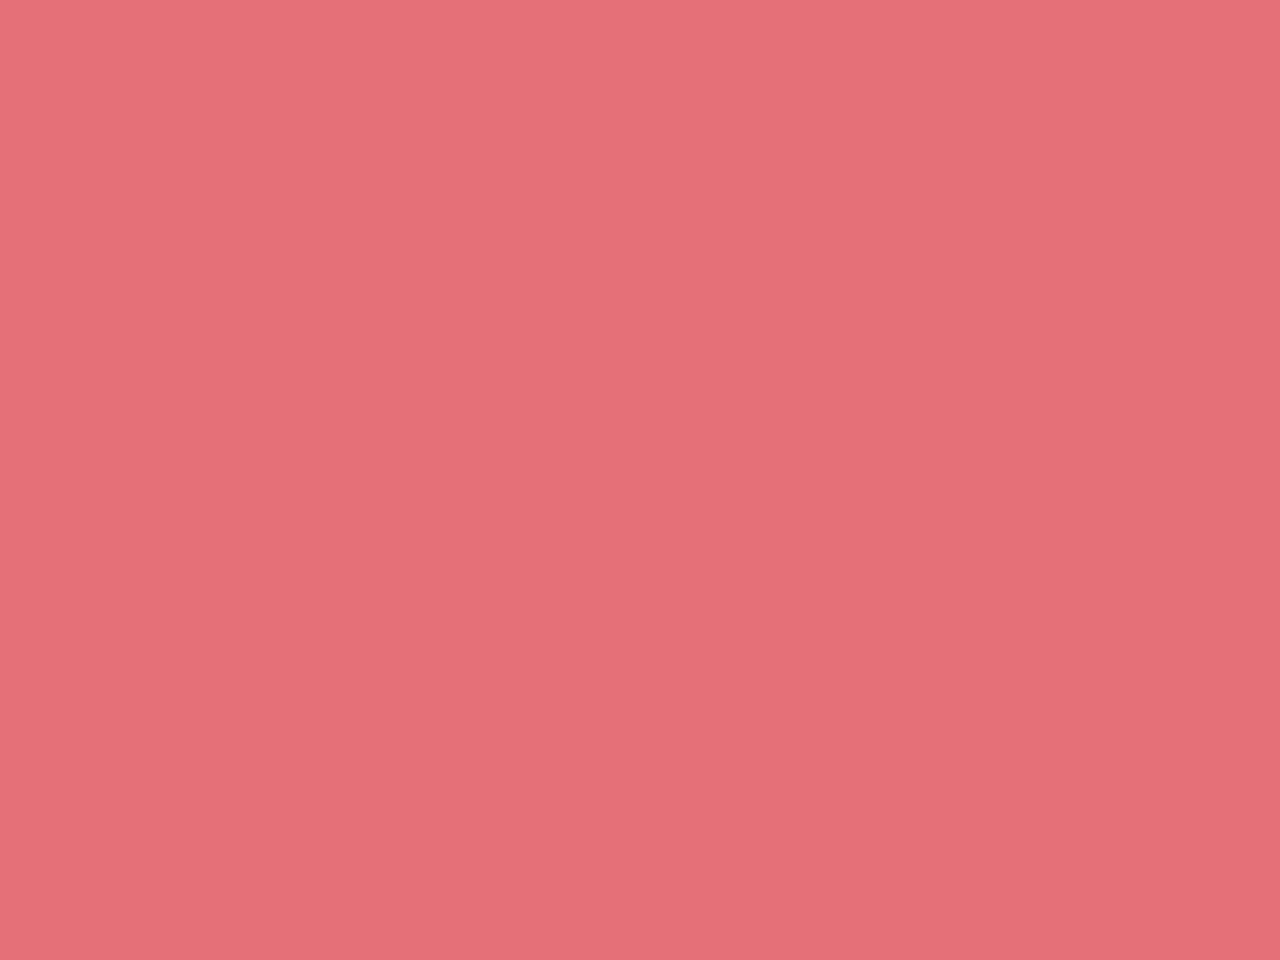 1280x960 Tango Pink Solid Color Background